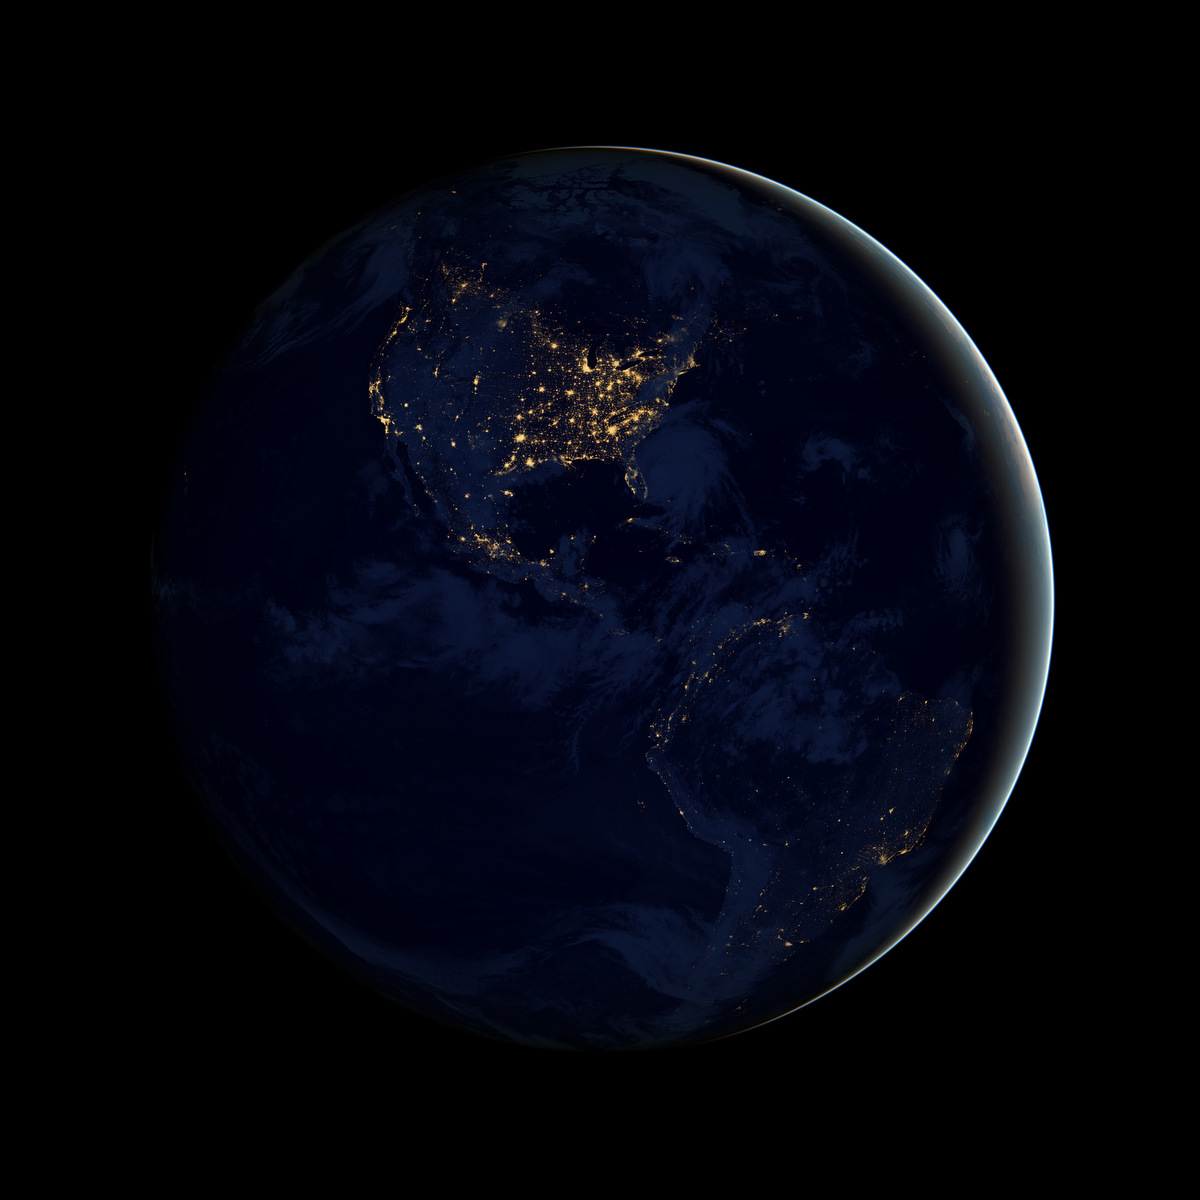 nasa earth data - photo #5